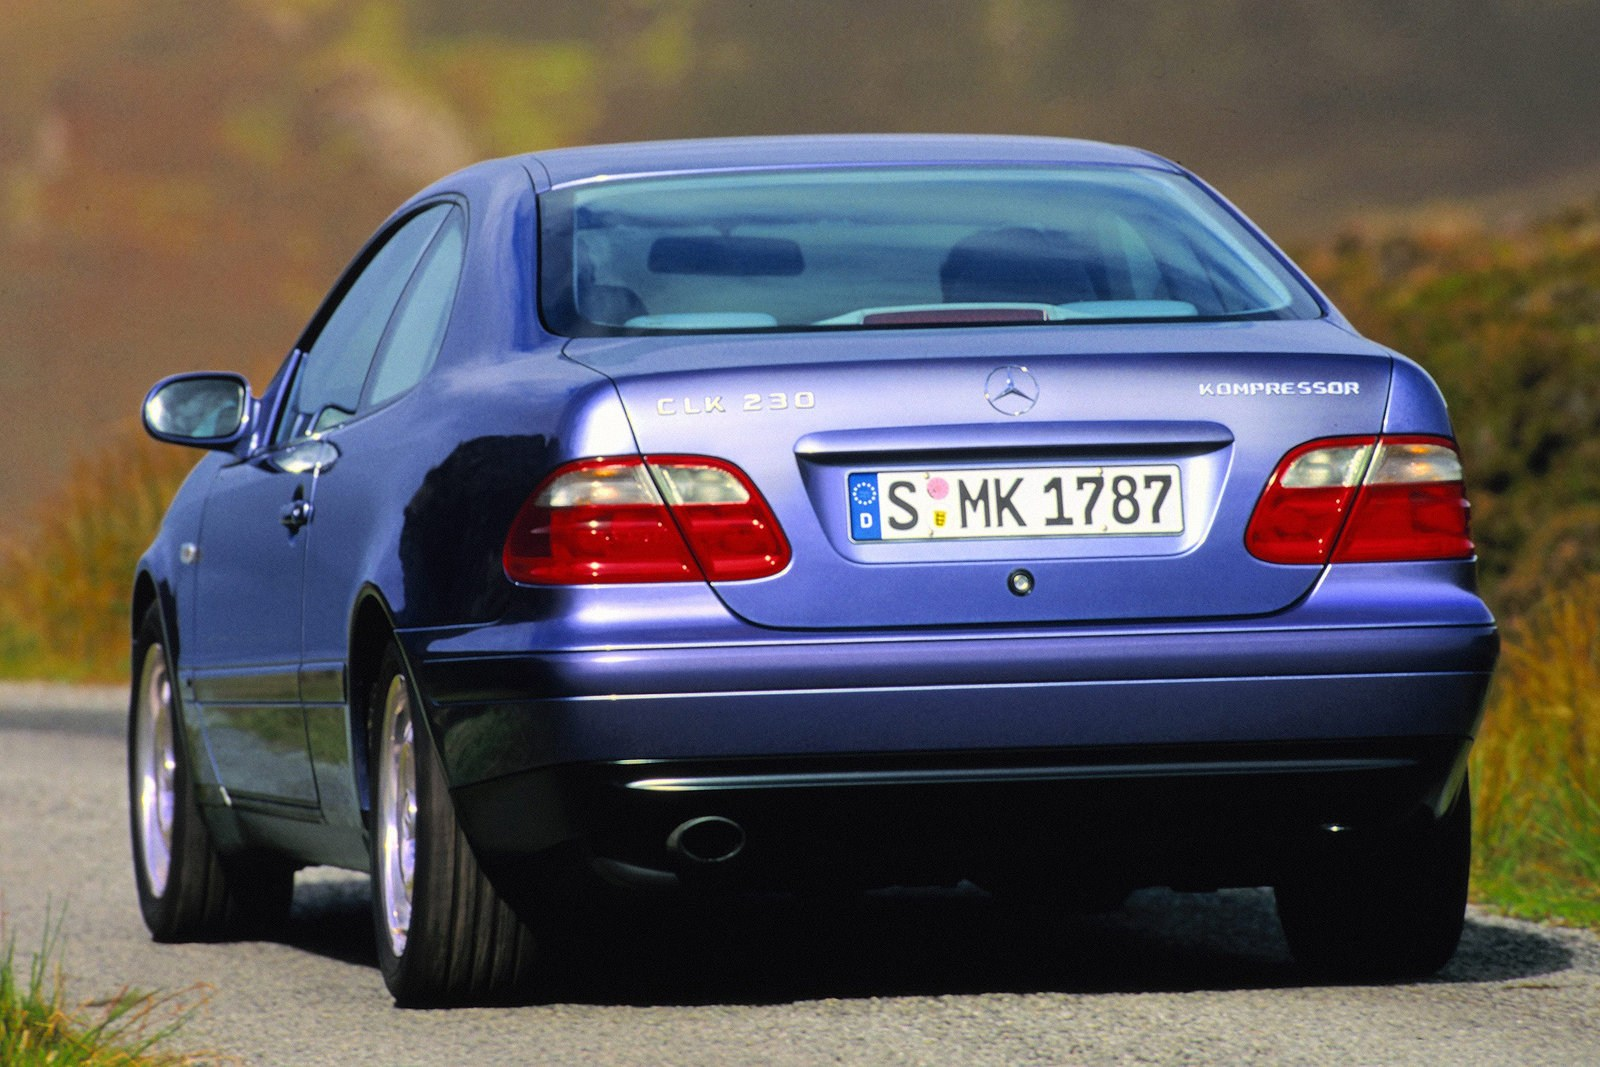 Mercedes Benz CLK 230 Kompressor C208 2